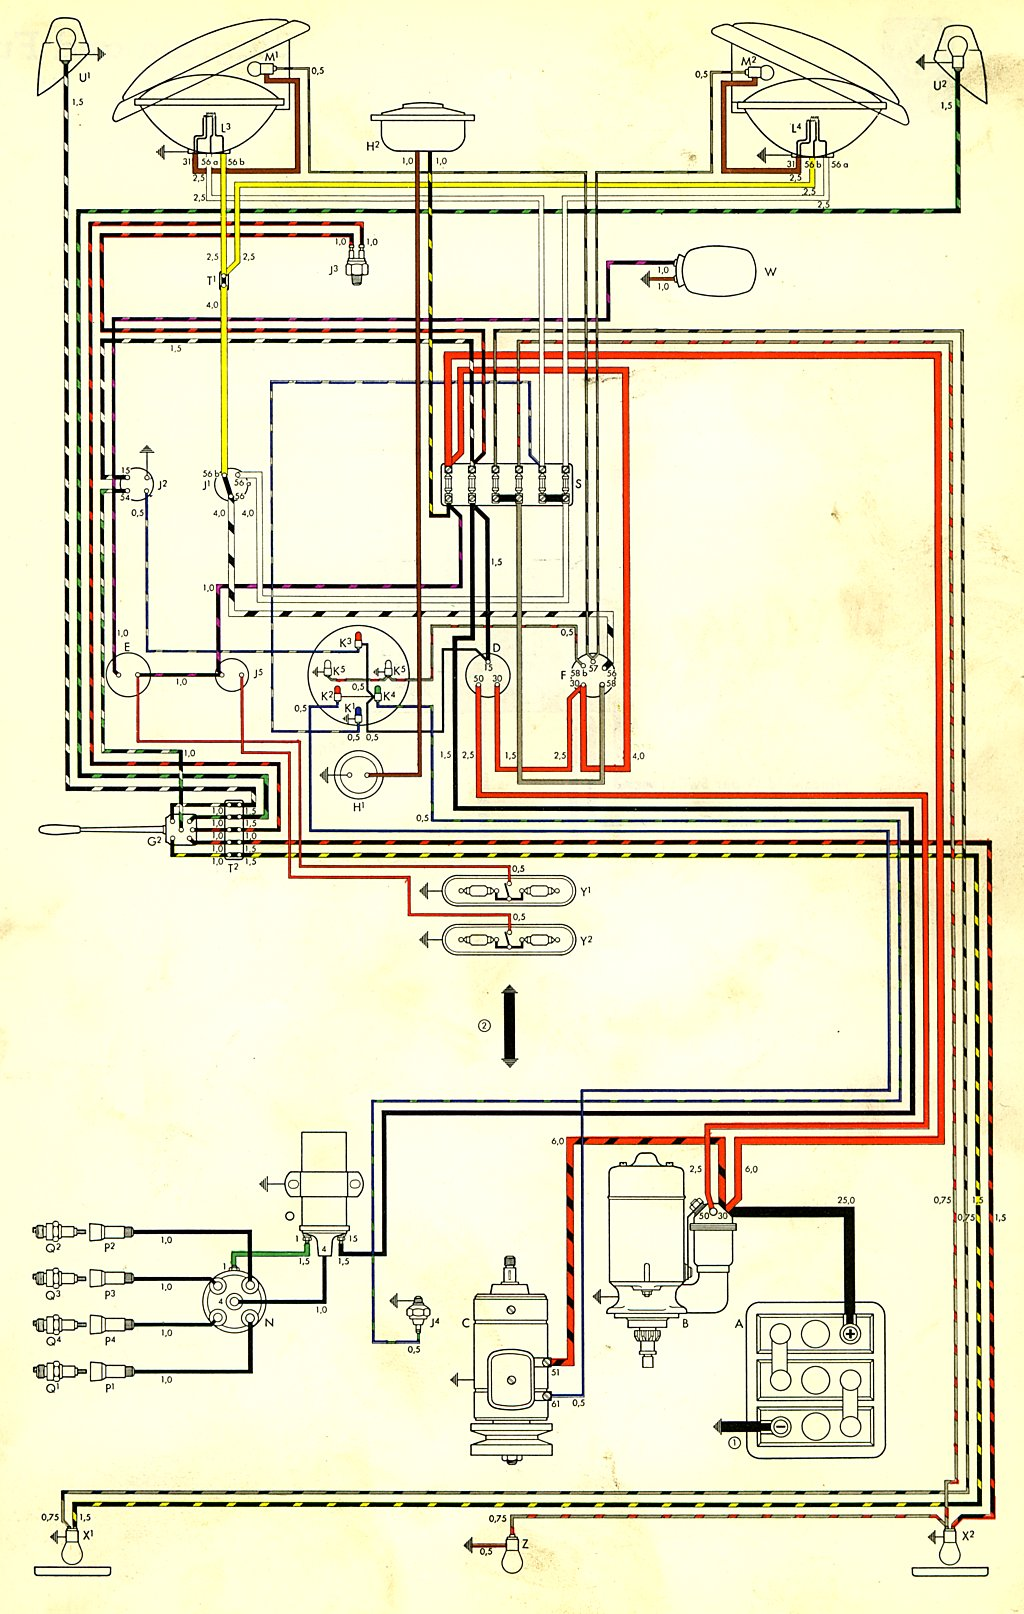 Thesamba type 2 wiring diagrams asfbconference2016 Image collections